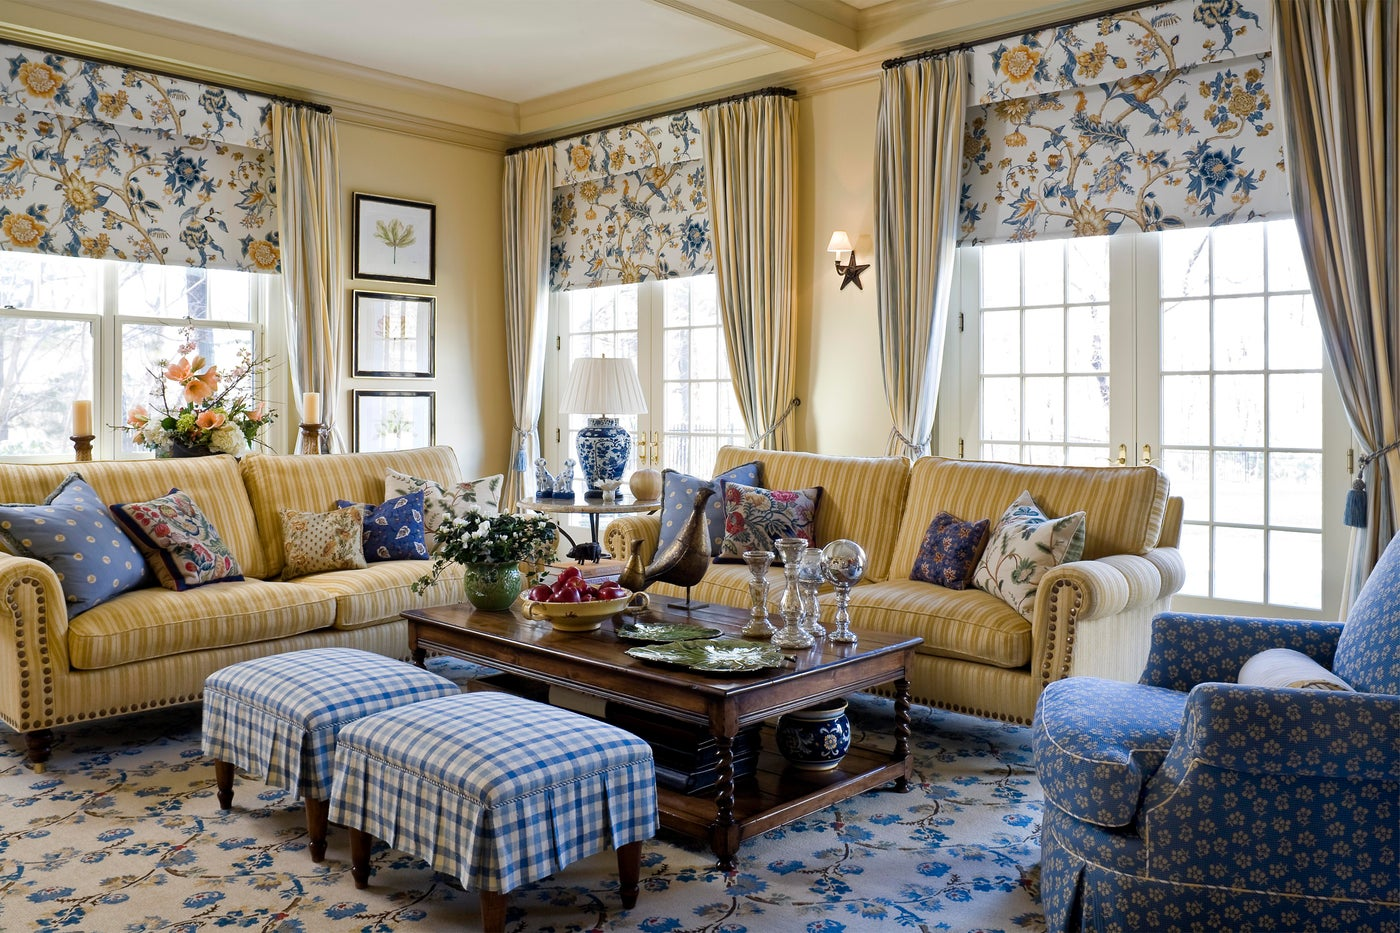 A fun play on modern and traditional design comes together in this textile-rich family room.